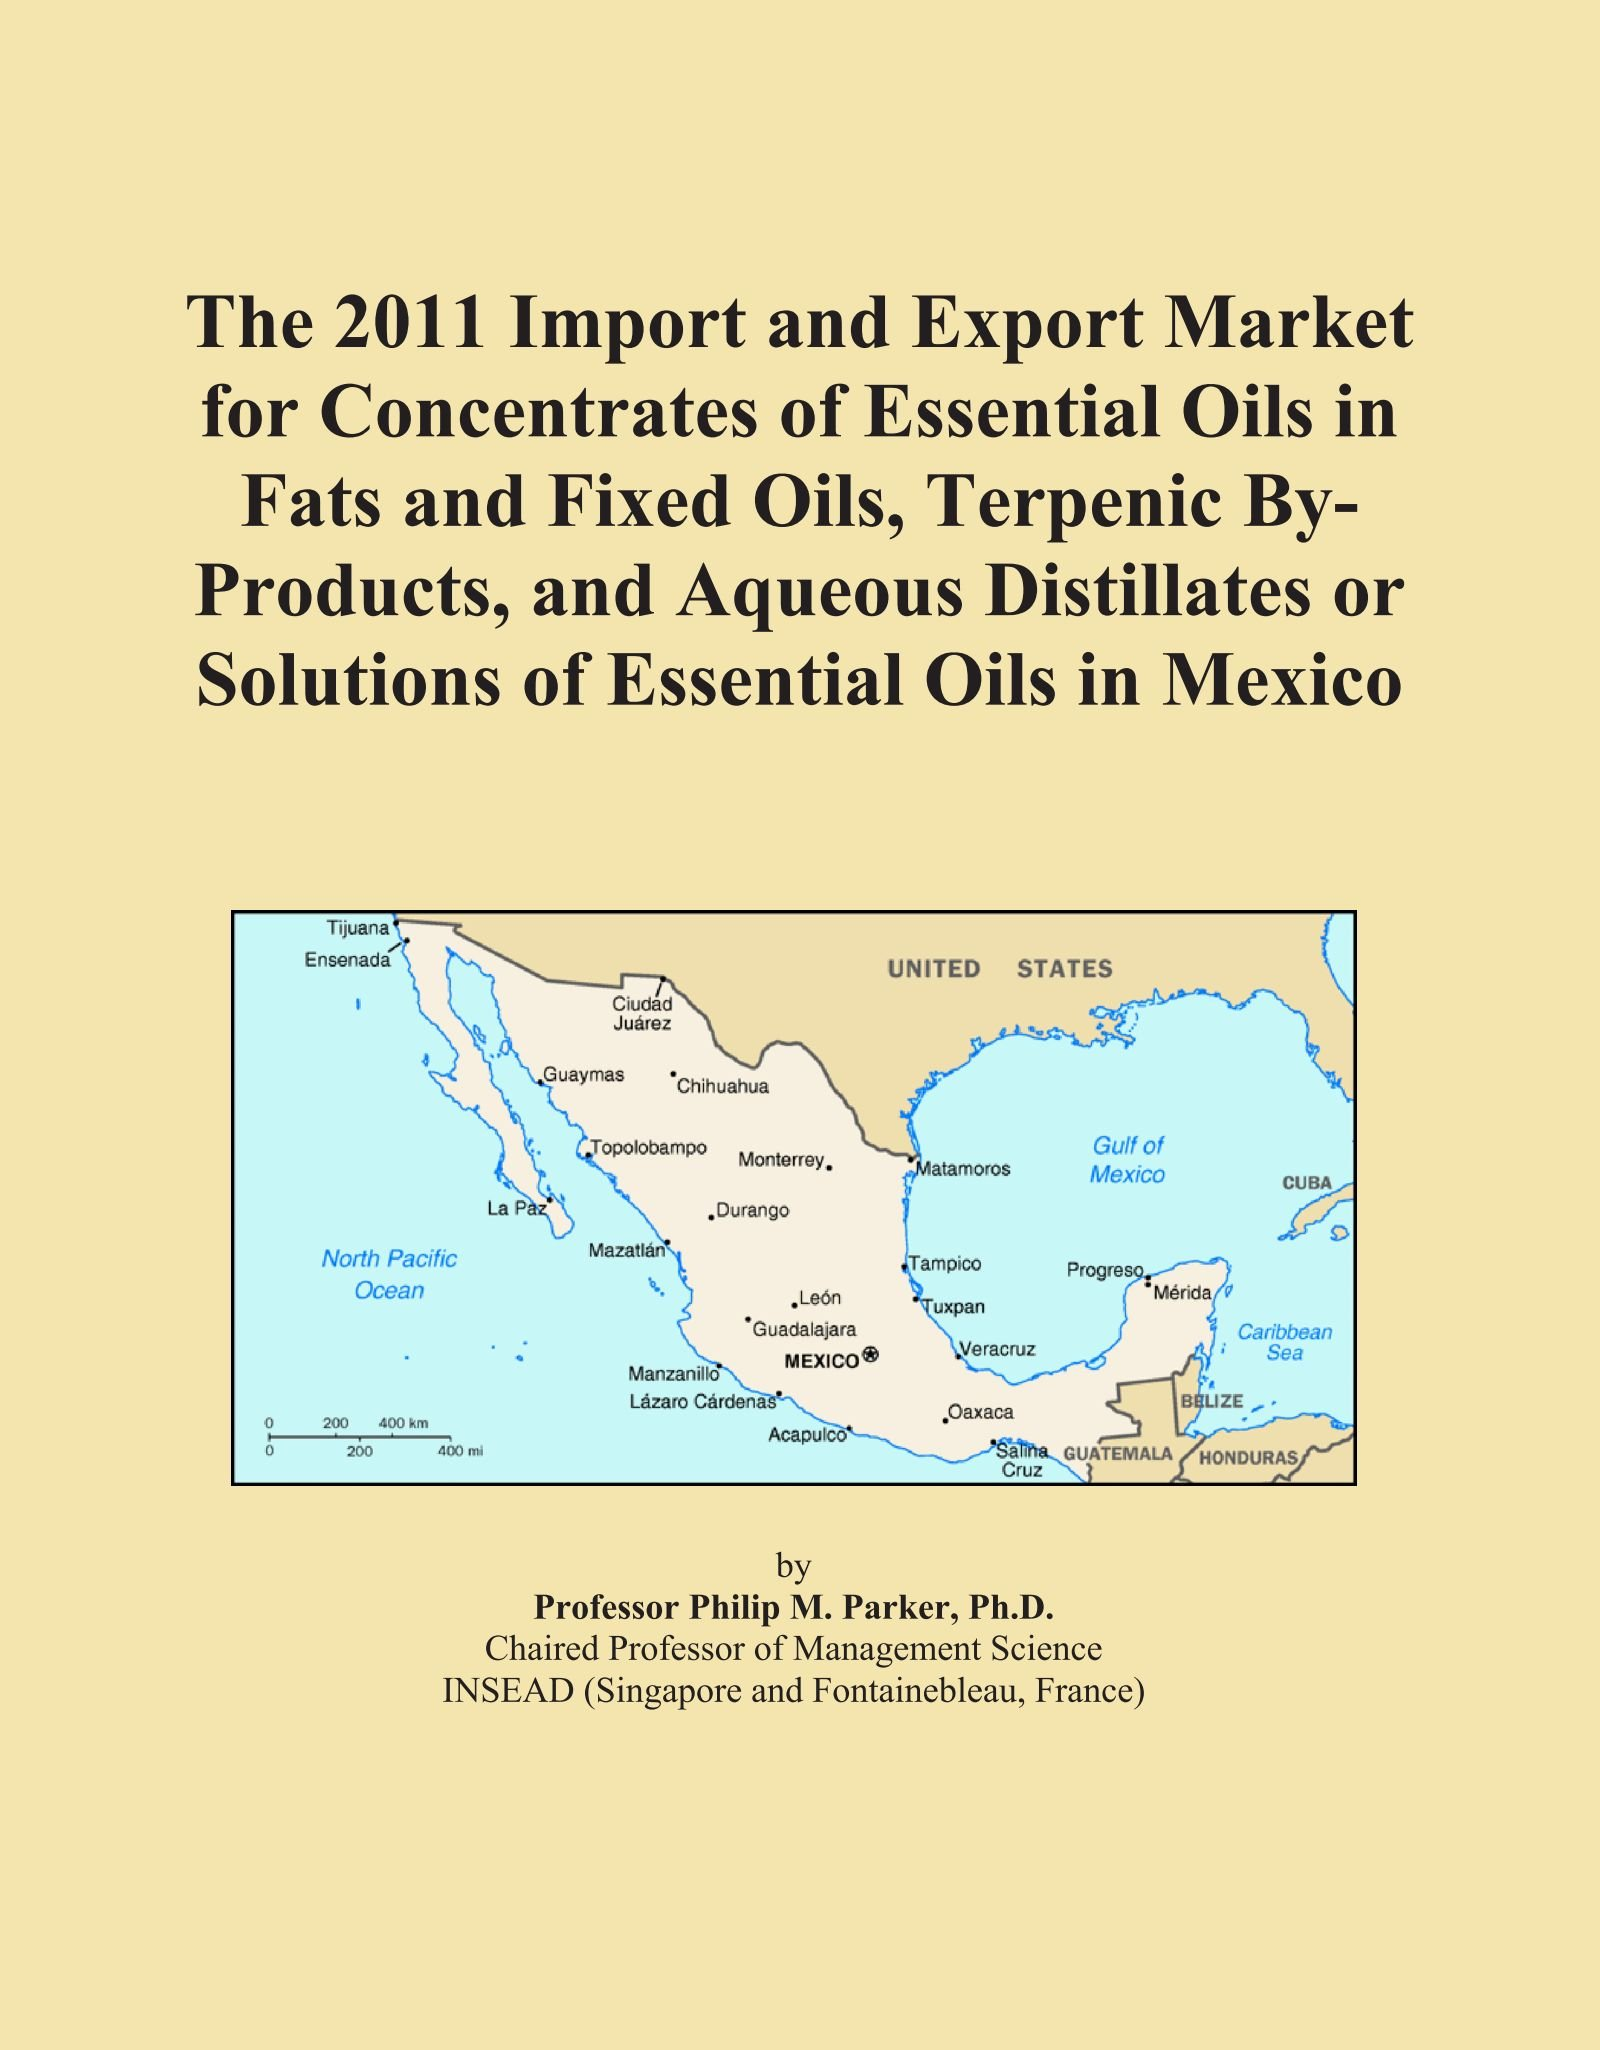 The 2011 Import and Export Market for Concentrates of Essential Oils in Fats and Fixed Oils, Terpenic By-Products, and Aqueous Distillates or Solutions of Essential Oils in Mexico PDF